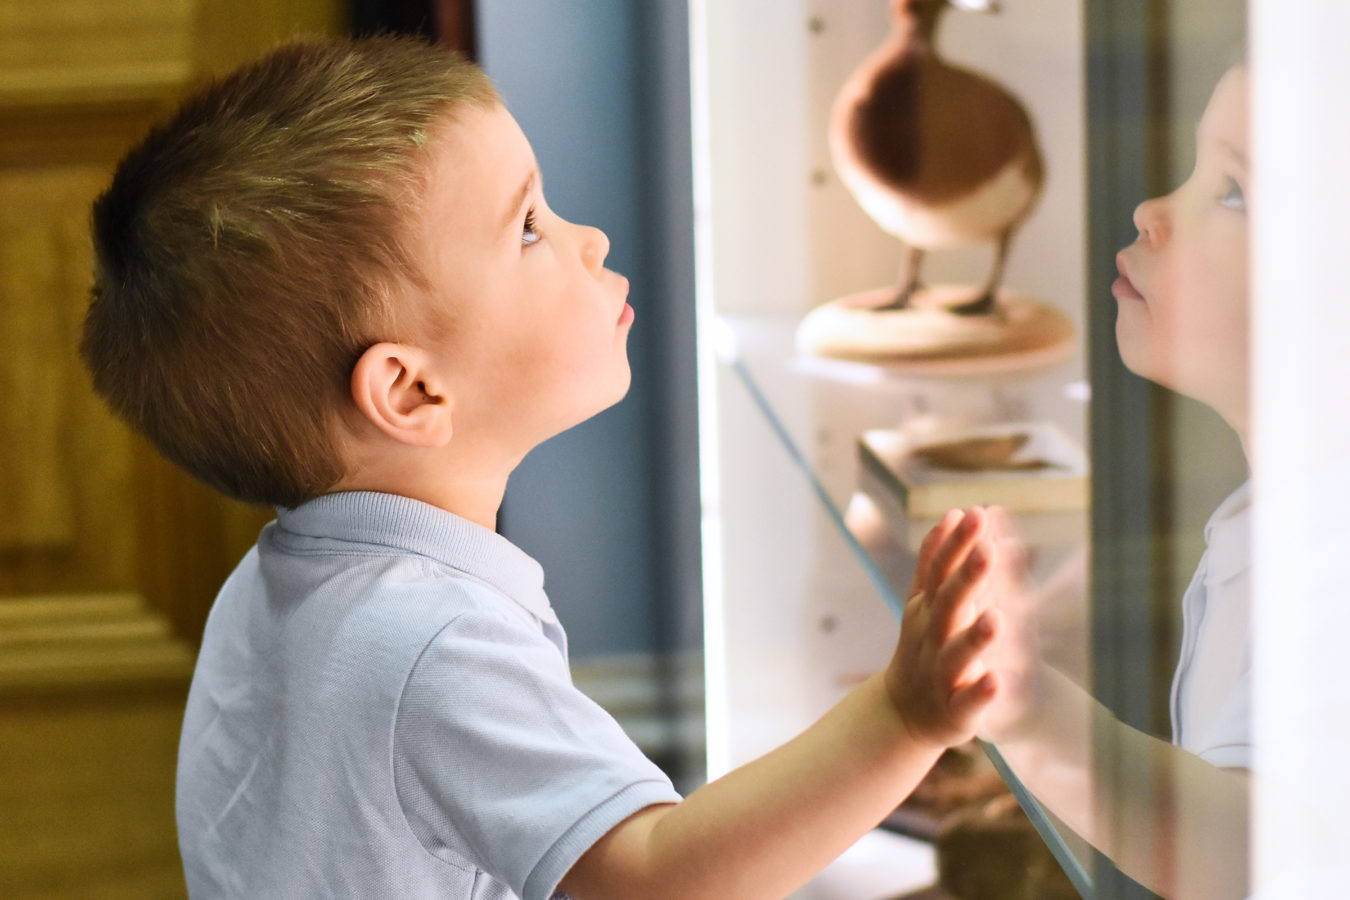 A young boy with his hand on a glass cabinet in The Colour and Camouflage Gallery, peering into to it